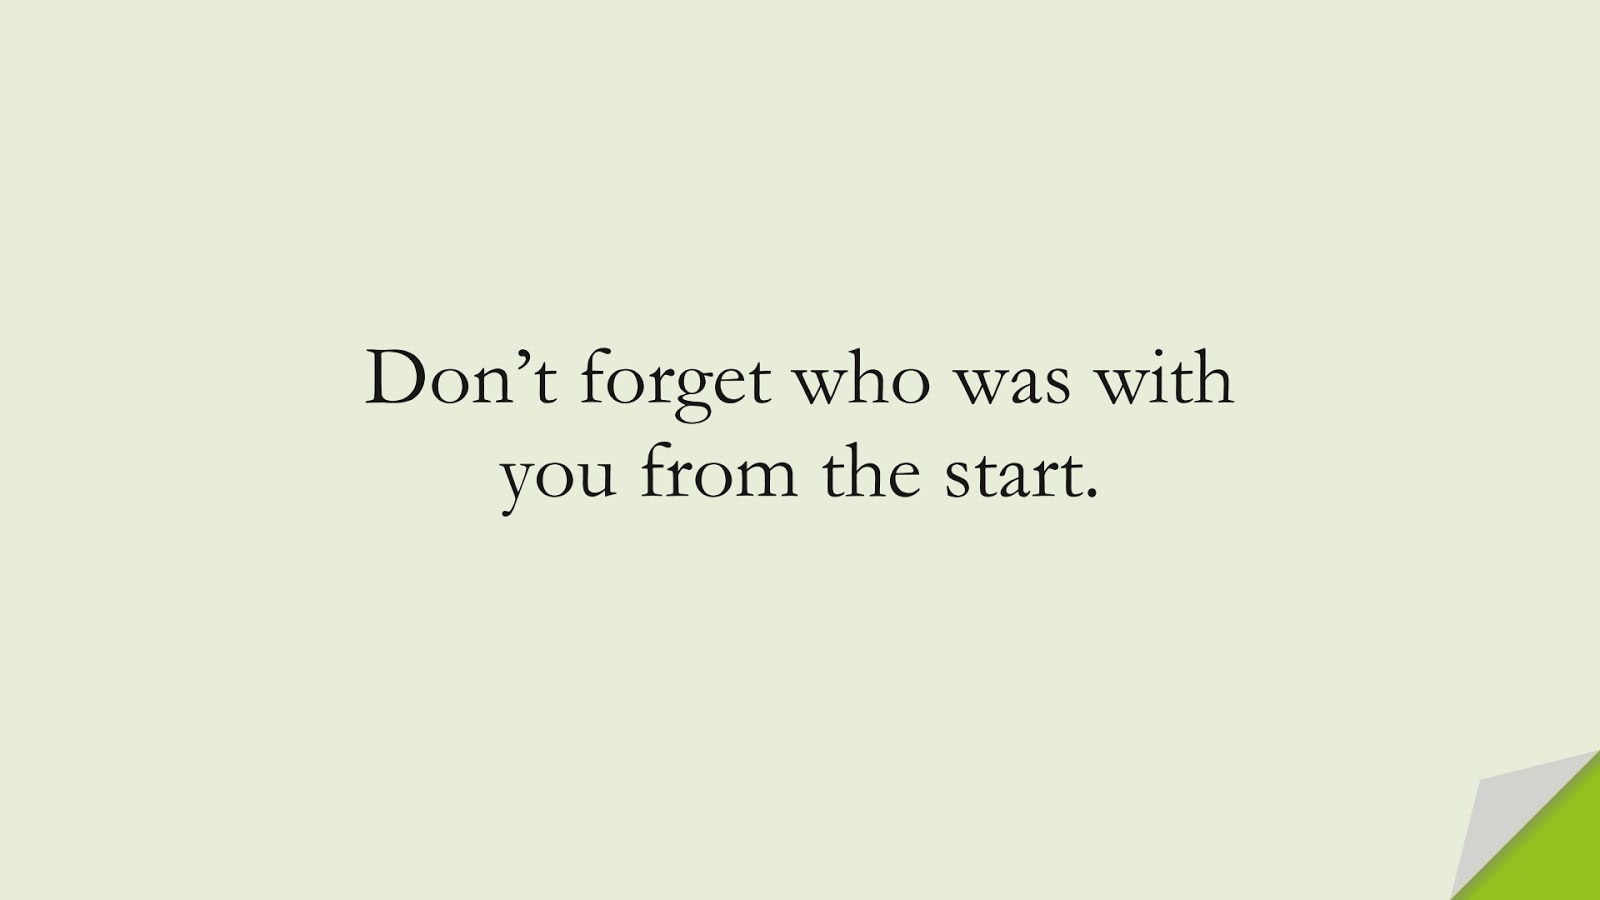 Don't forget who was with you from the start.FALSE